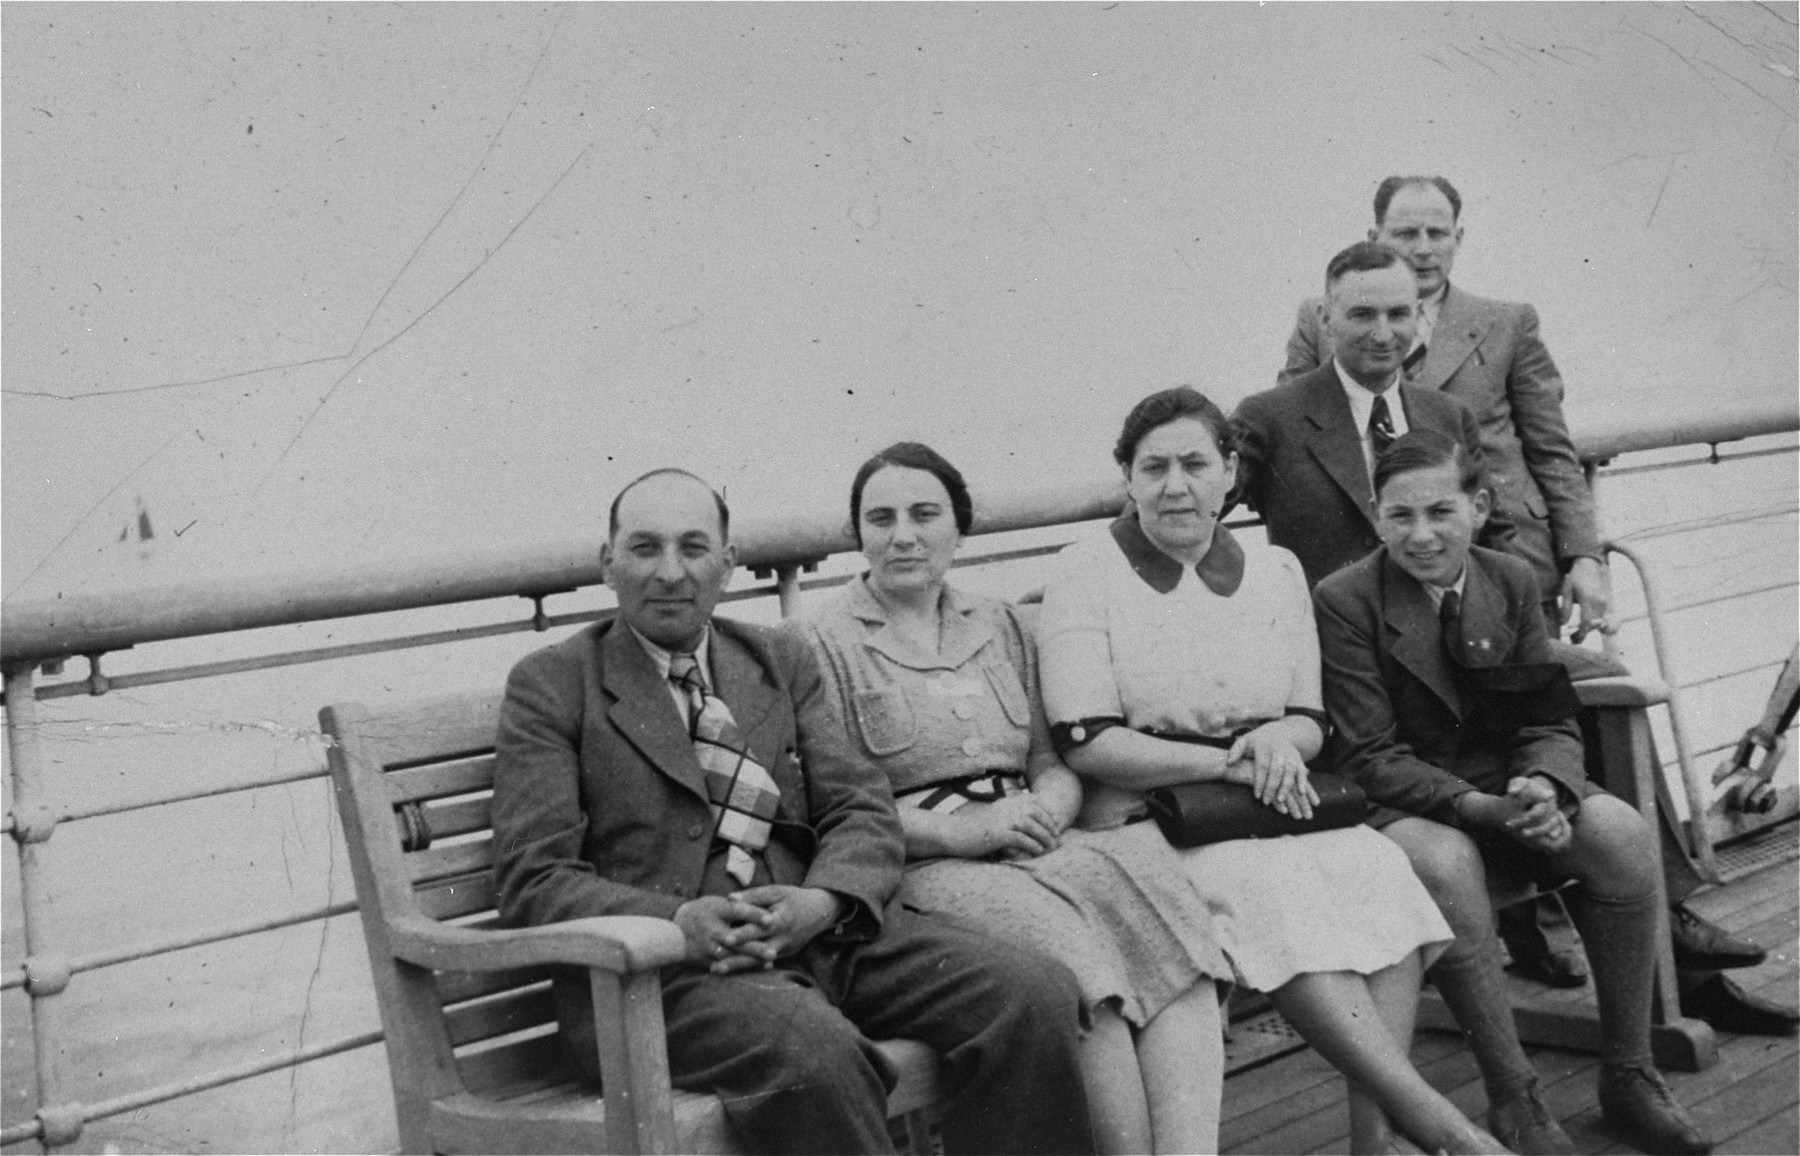 A Jewish refugee family from Germany poses on the deck of the SS Rotterdam while en route to New York.  Pictured are Sol and Henrietta Meyer (seated on the left) and their son Harvey (seated at the right).  (The Meyers are the aunt and uncle of donor Jill Pauly.)